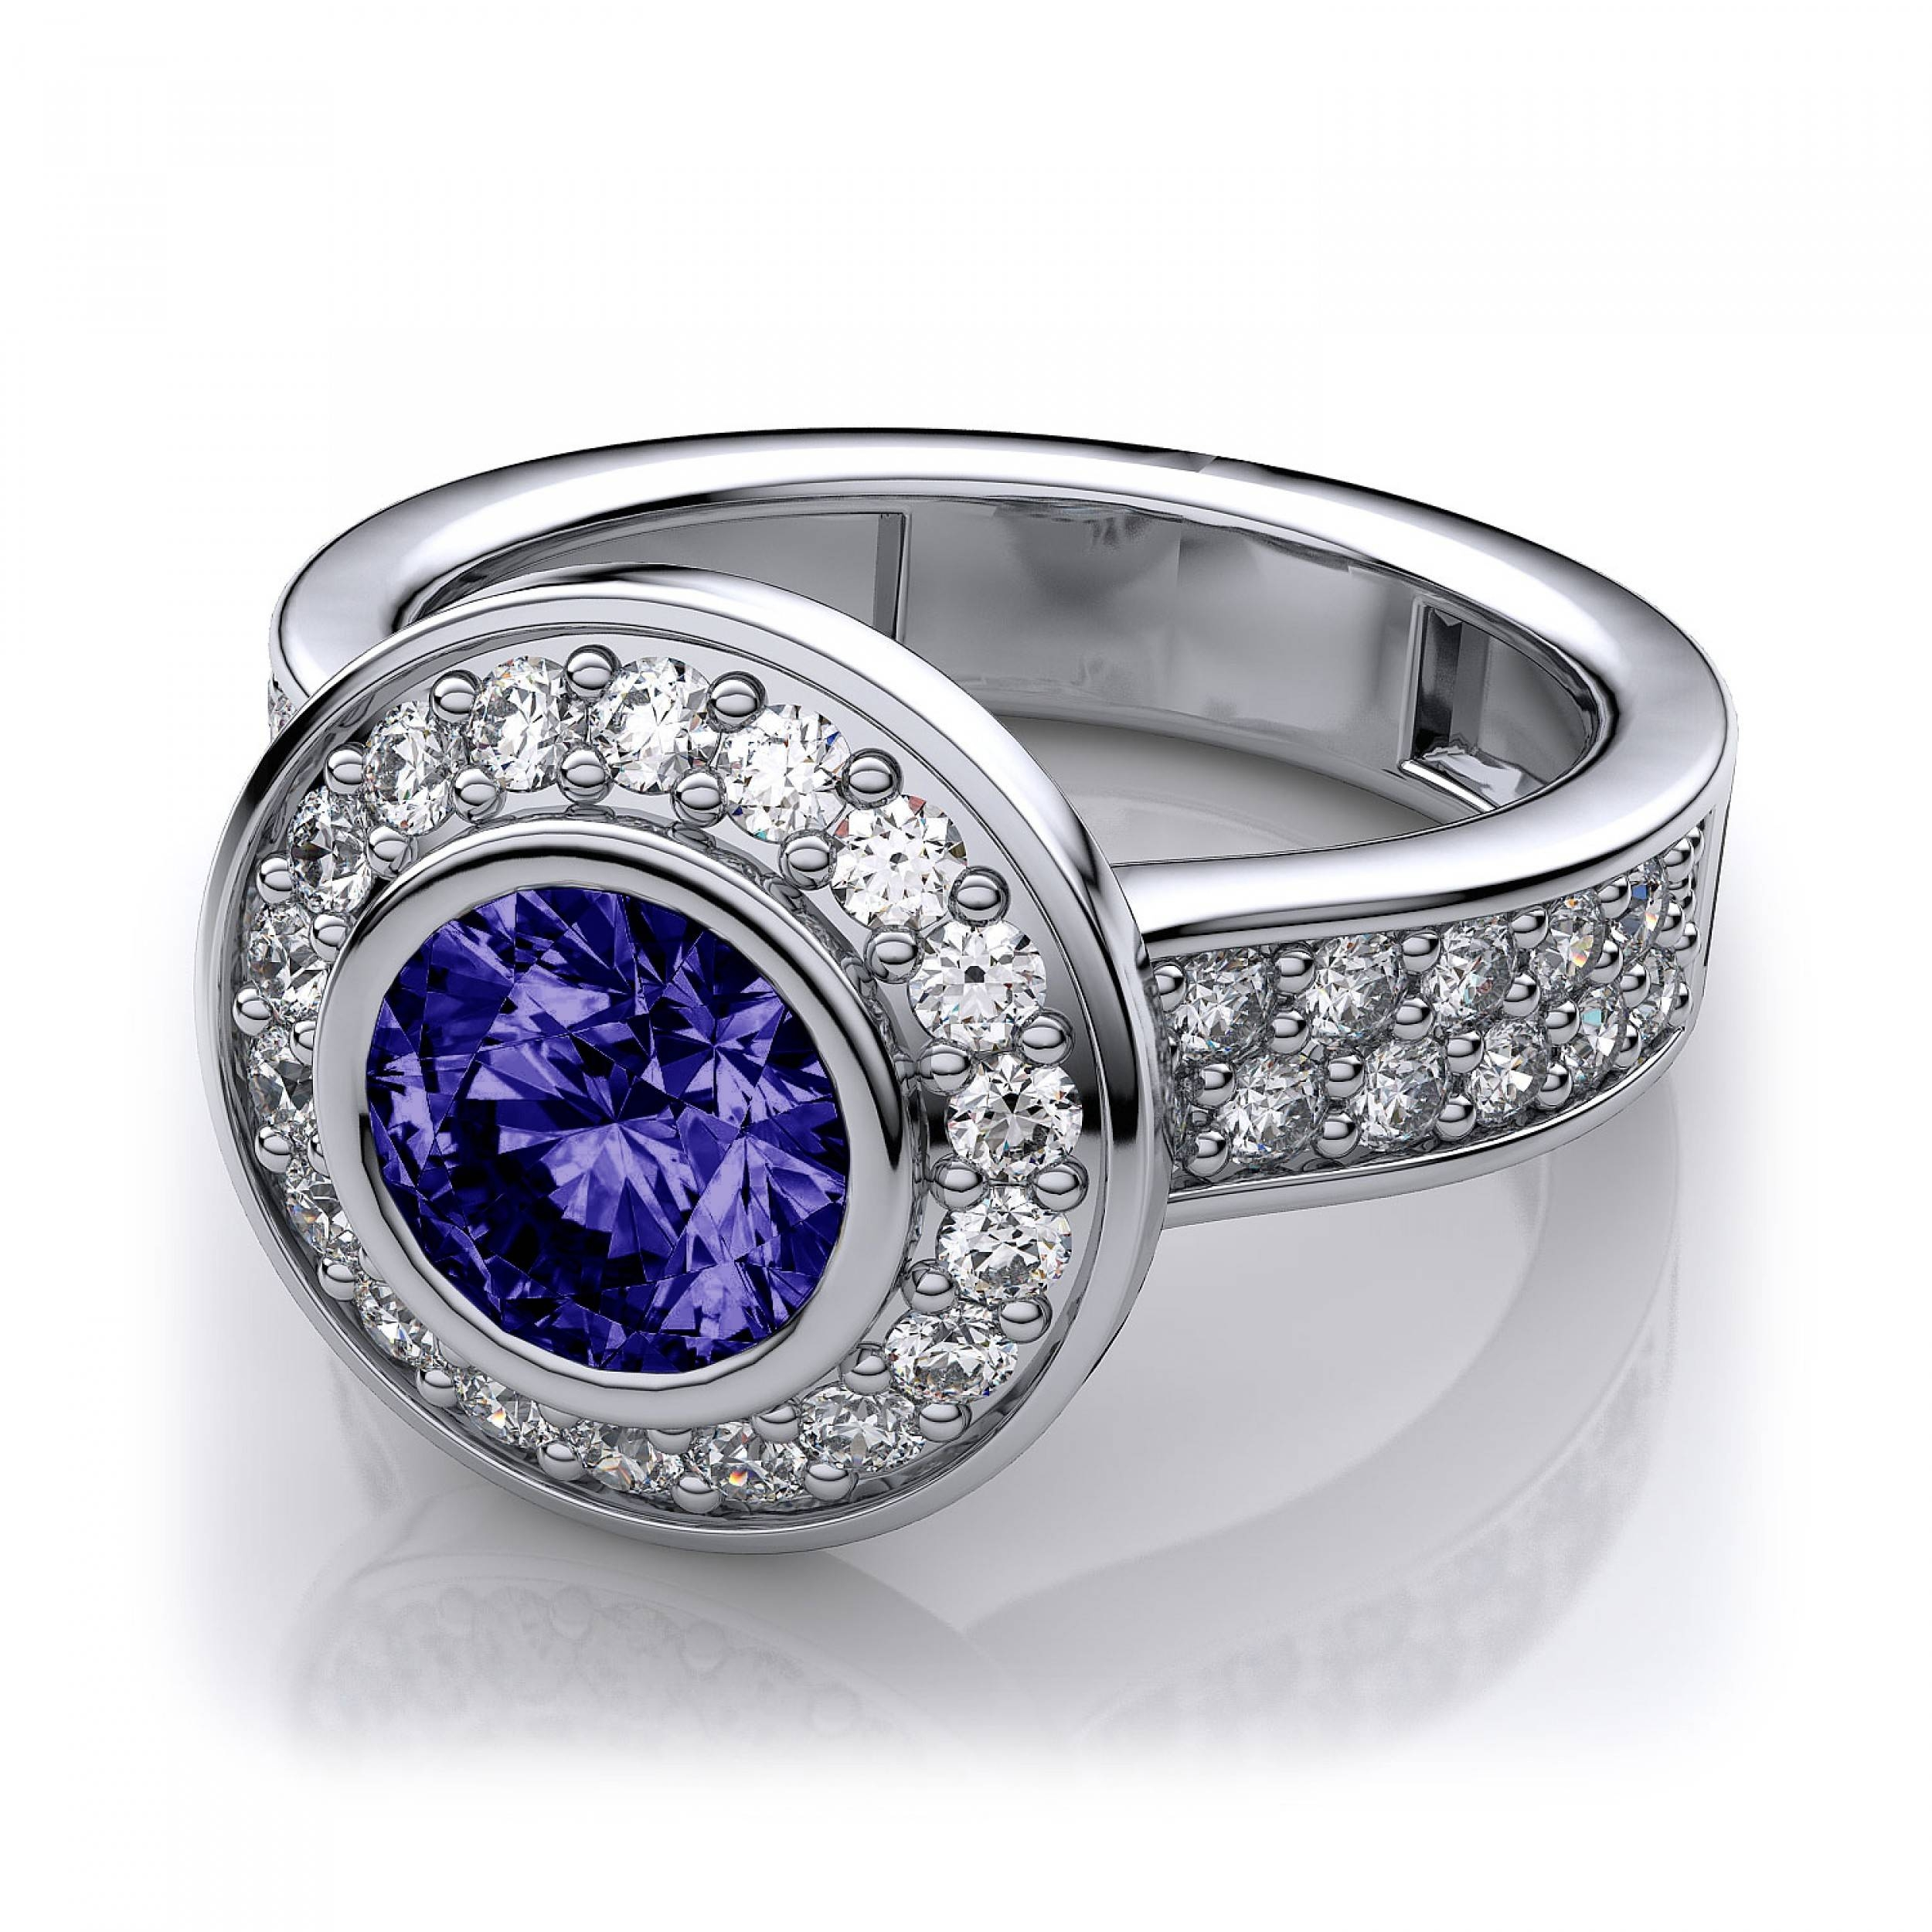 Profile Tanzanite Halo And Bezel Set Diamond Ring In 14K White Gold Intended For Tanzanite Engagement Rings With White Gold (Gallery 3 of 15)